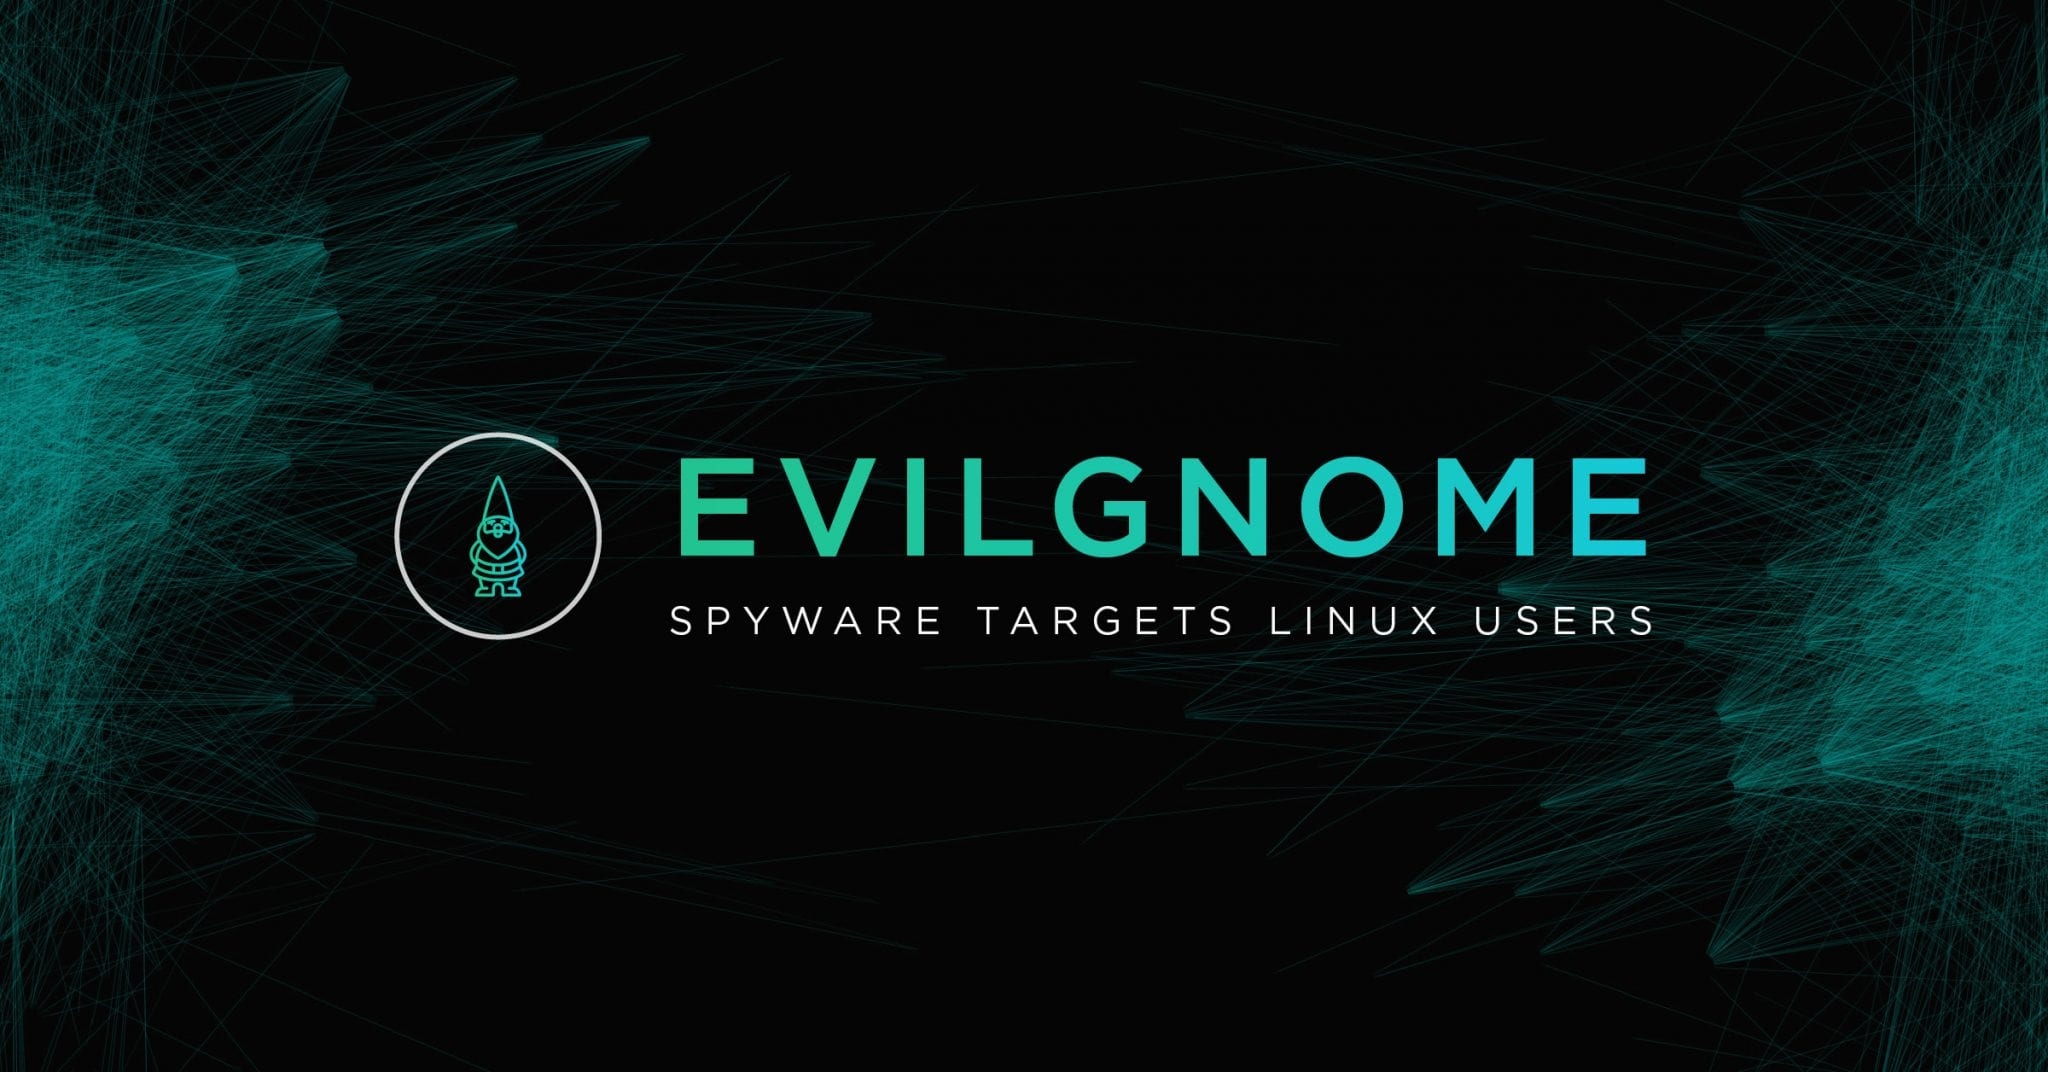 EvilGnome, the Linux spyware that records audio and steals your files